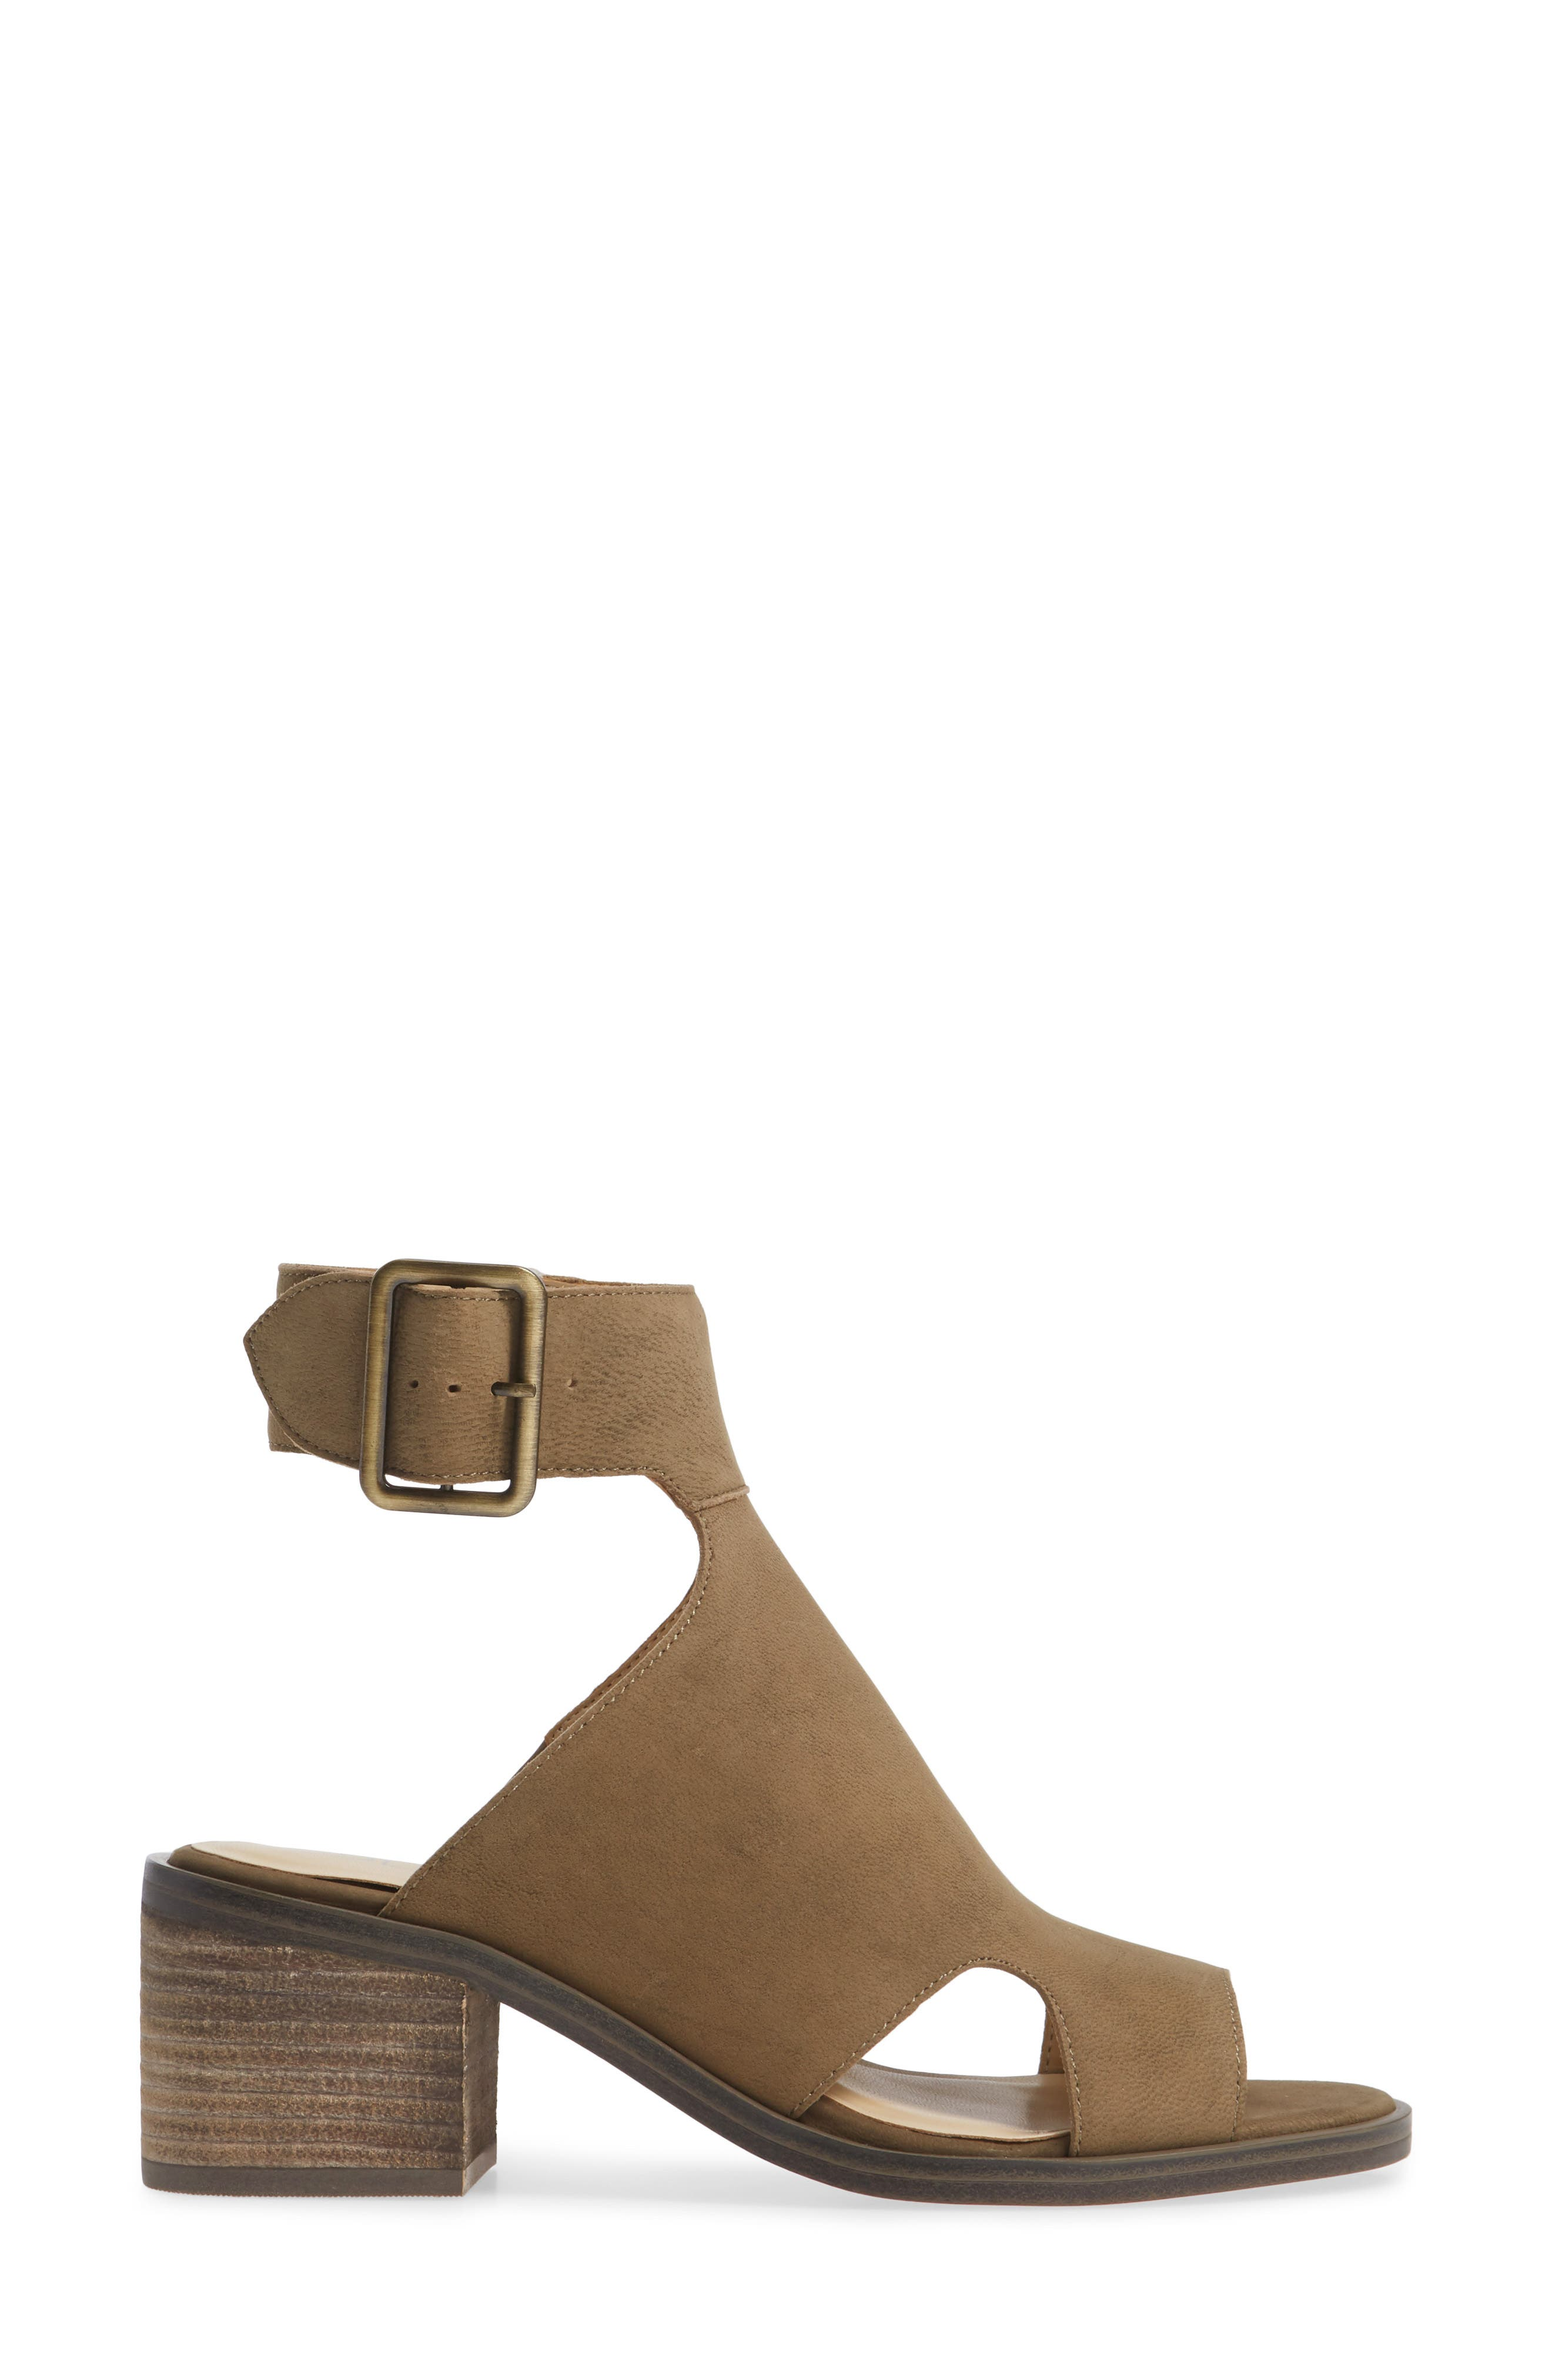 Tally Ankle Cuff Sandal,                             Alternate thumbnail 3, color,                             ANTIQUE GREEN NUBUCK